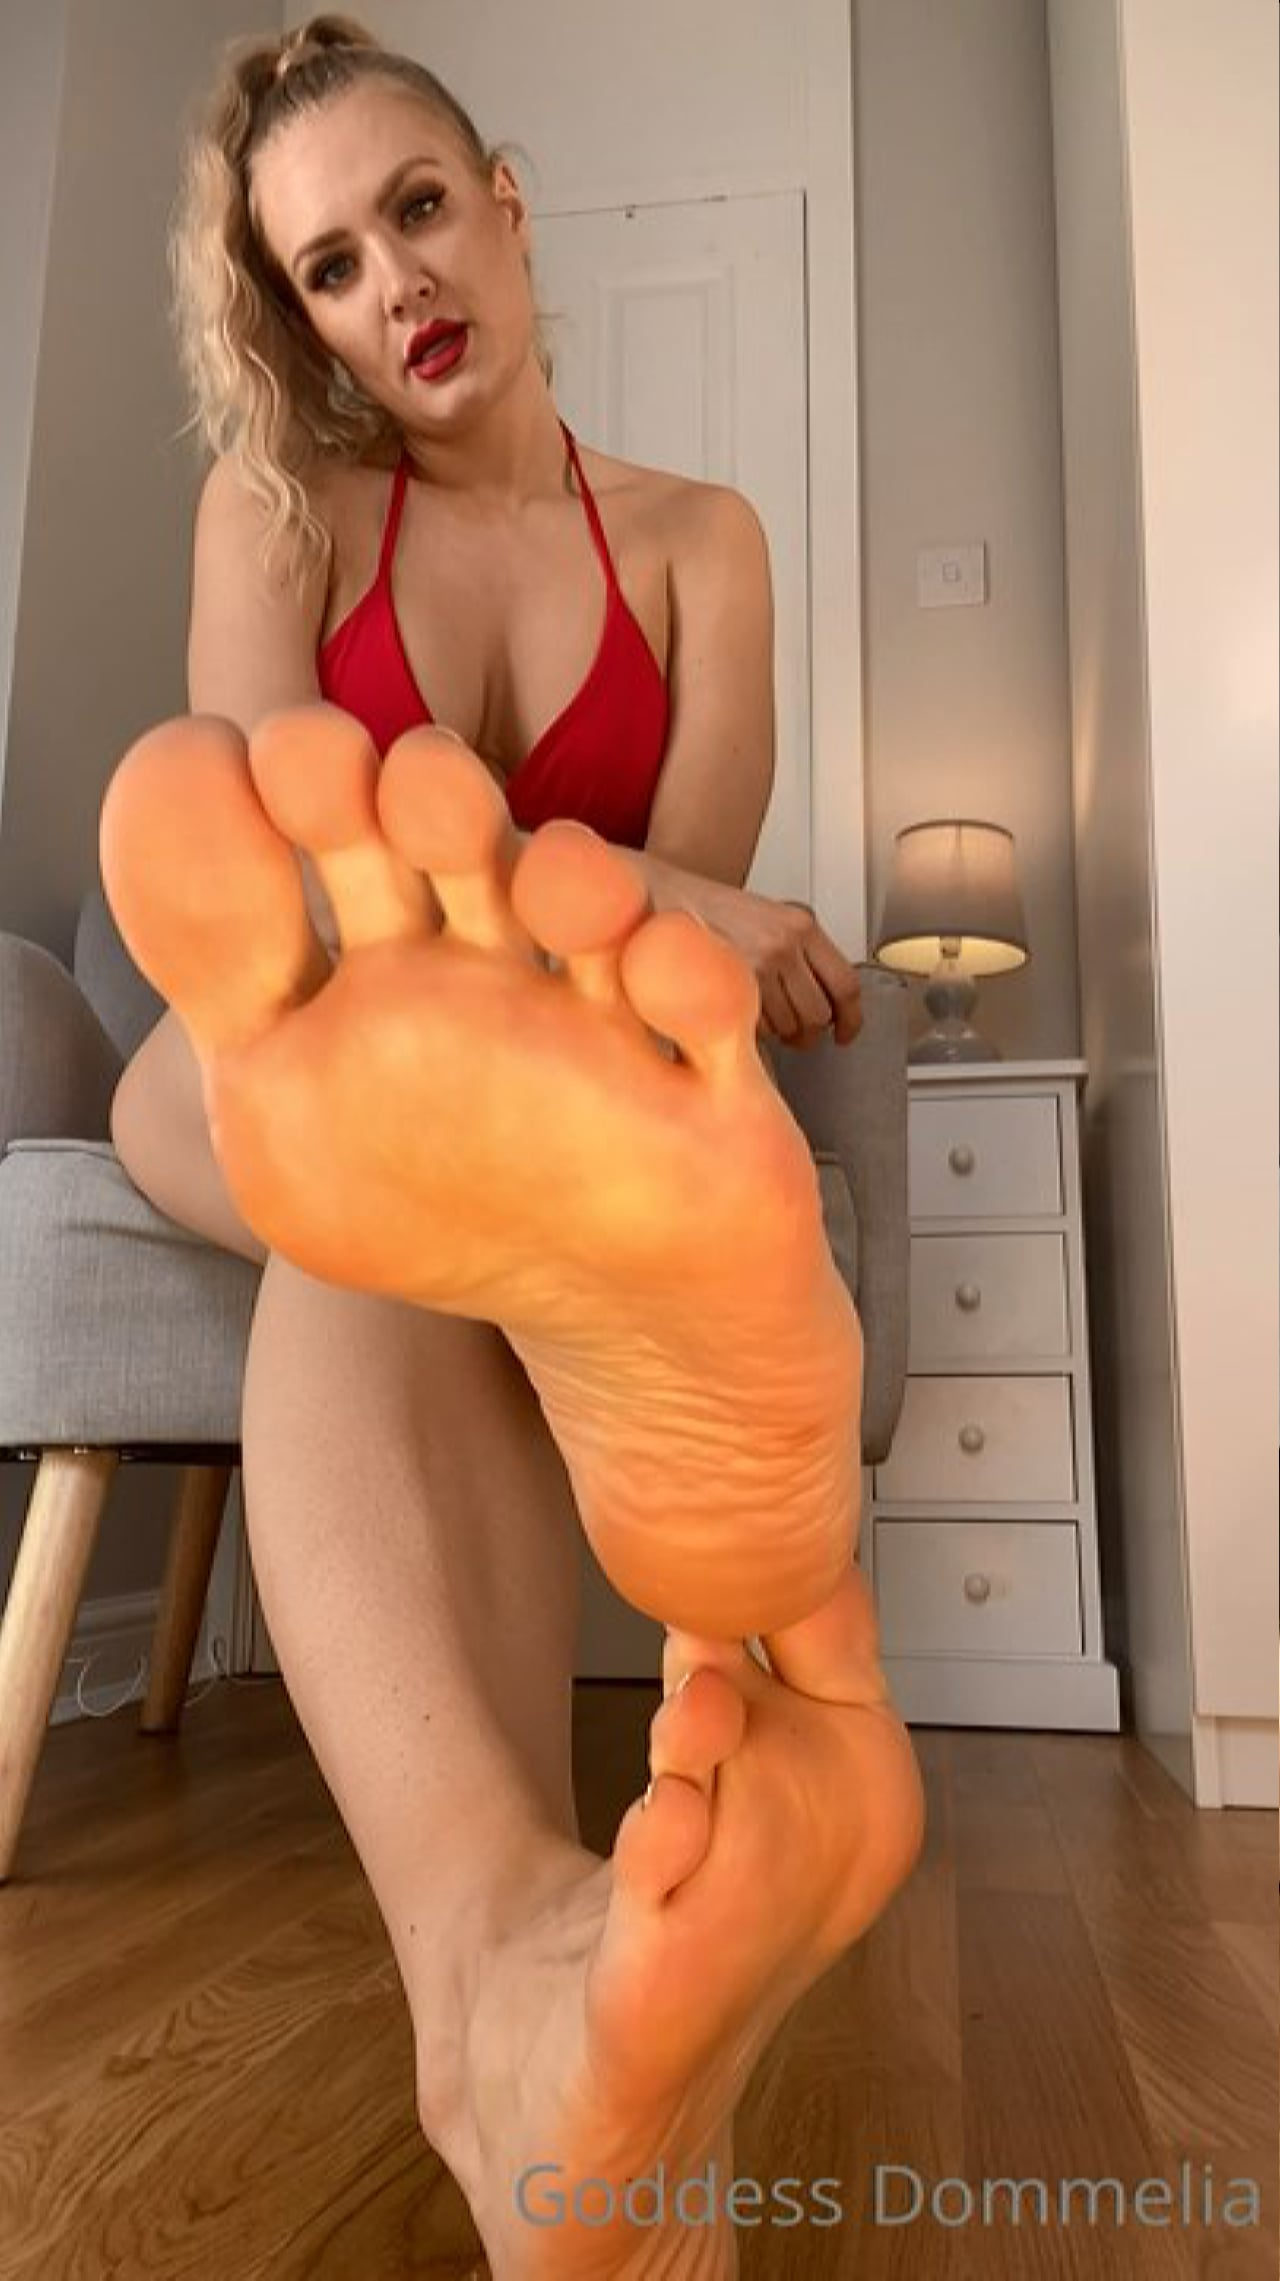 Are You Going To Be A Good Boy - GODDESS DOMMELIA - HD/720p/MP4